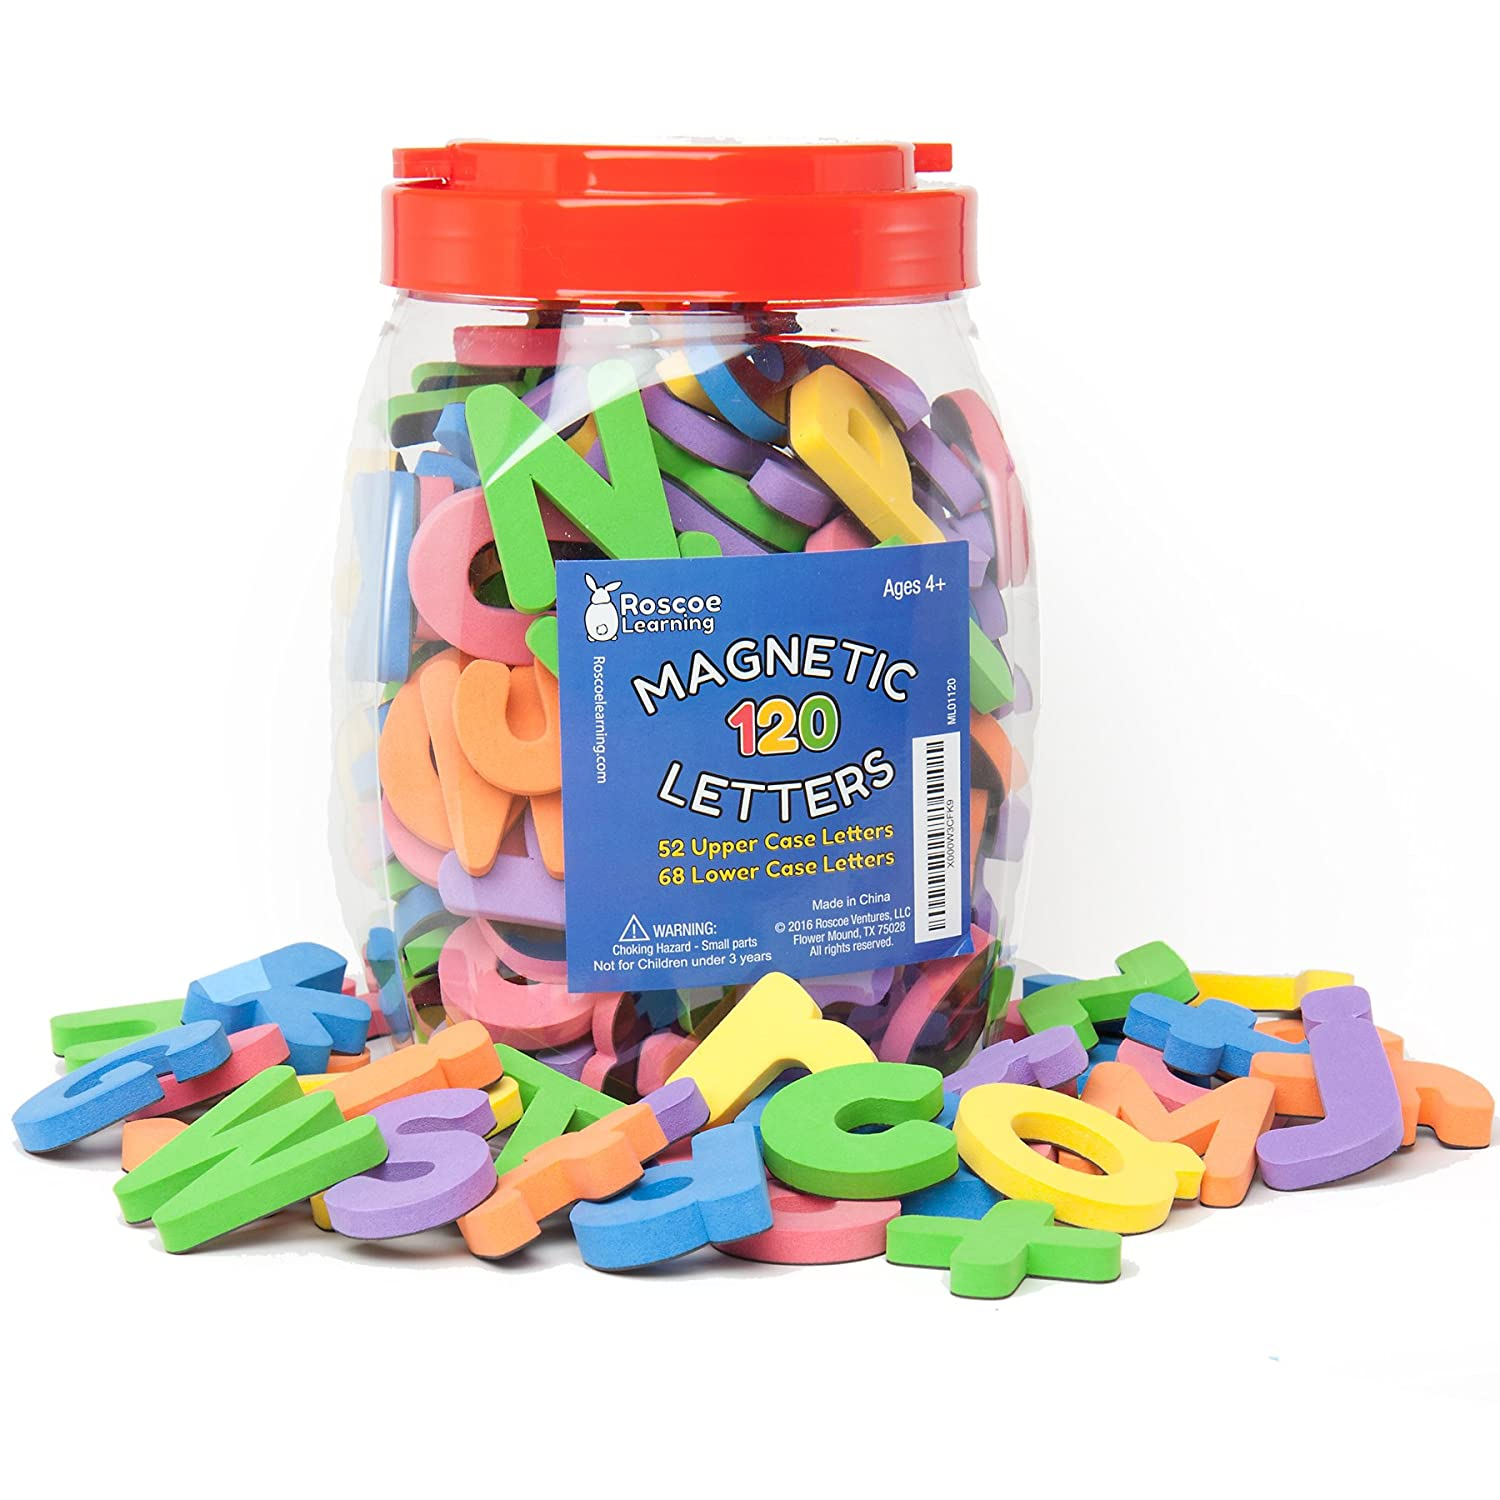 roscoe learning 120 magnetic letters premium foam abc magnets in storage container with handle